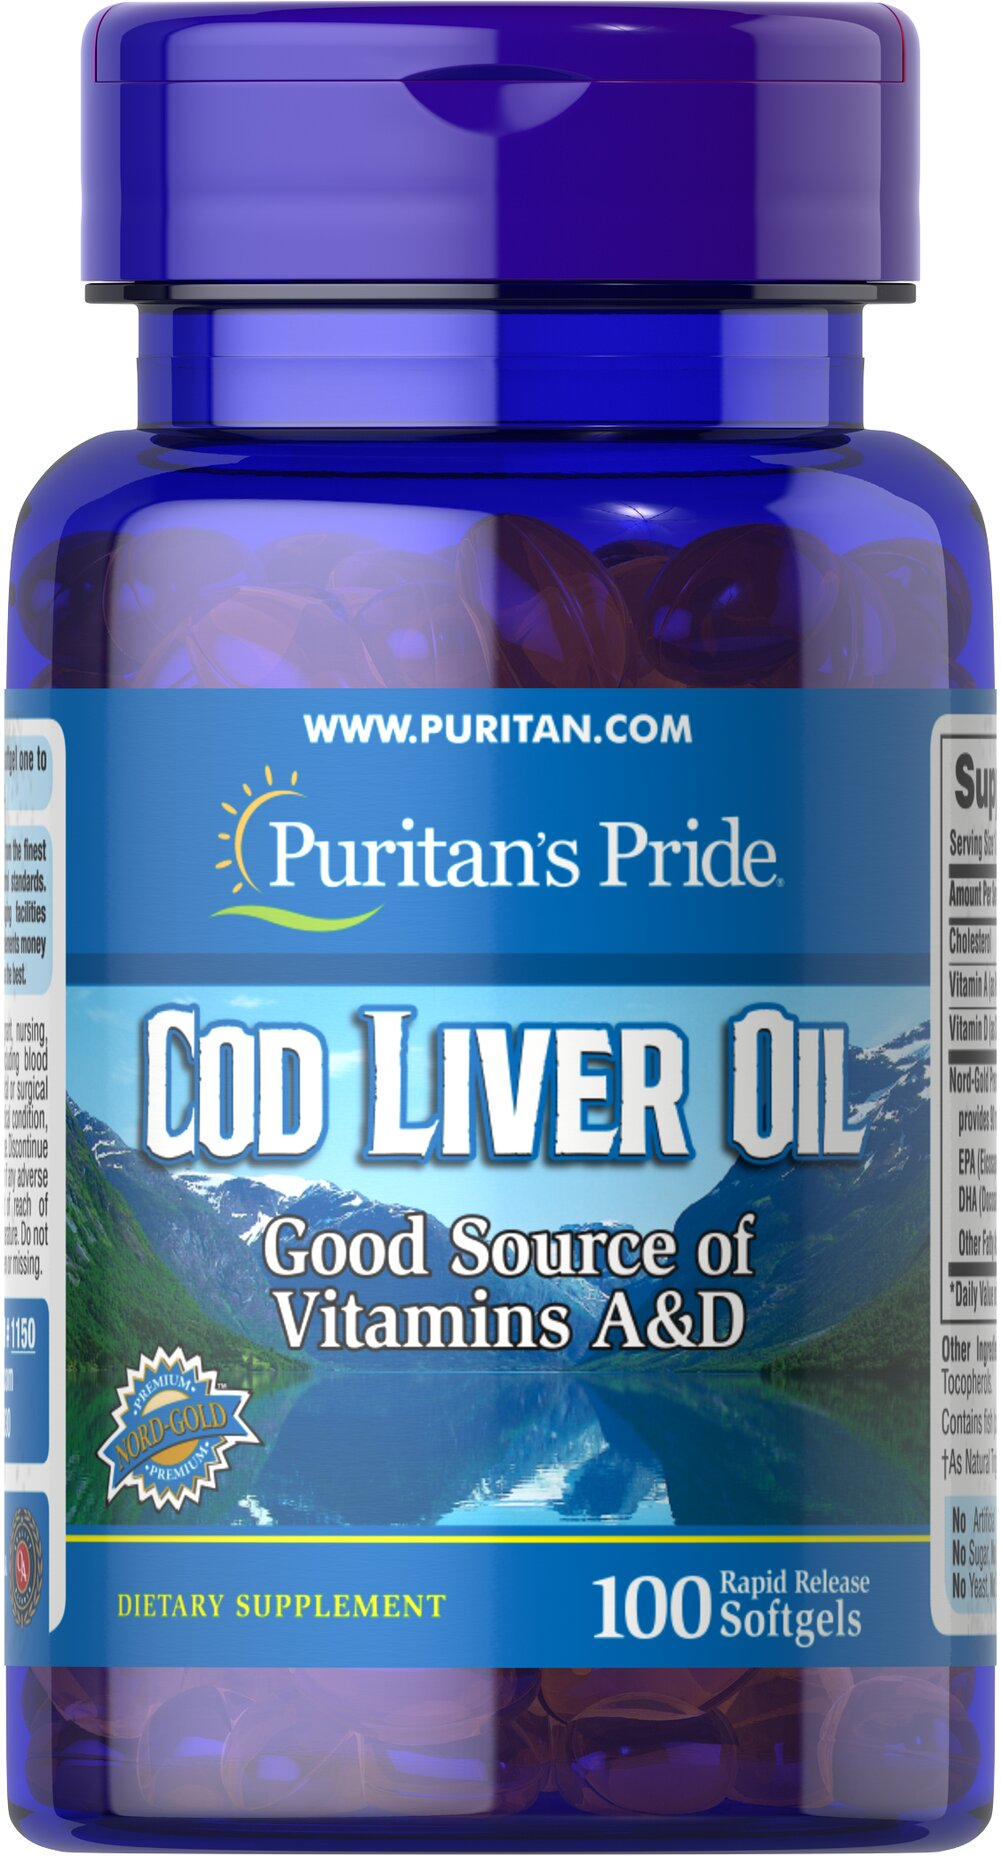 Cod Liver Oil 415 mg  100 Softgels 415 mg $6.49